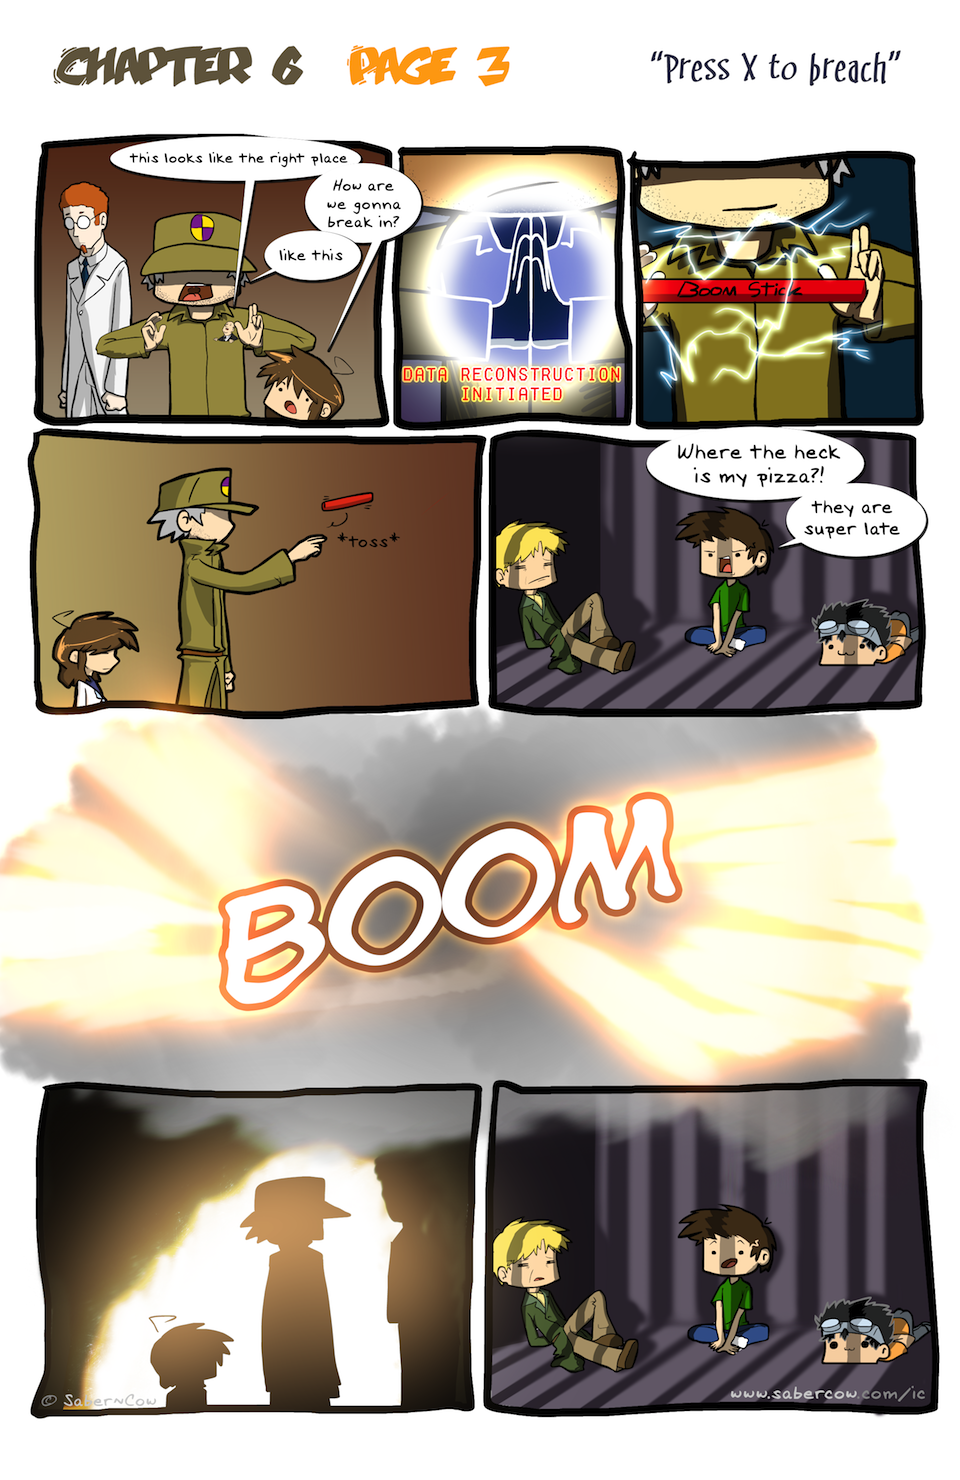 Chapter 6 Page 3